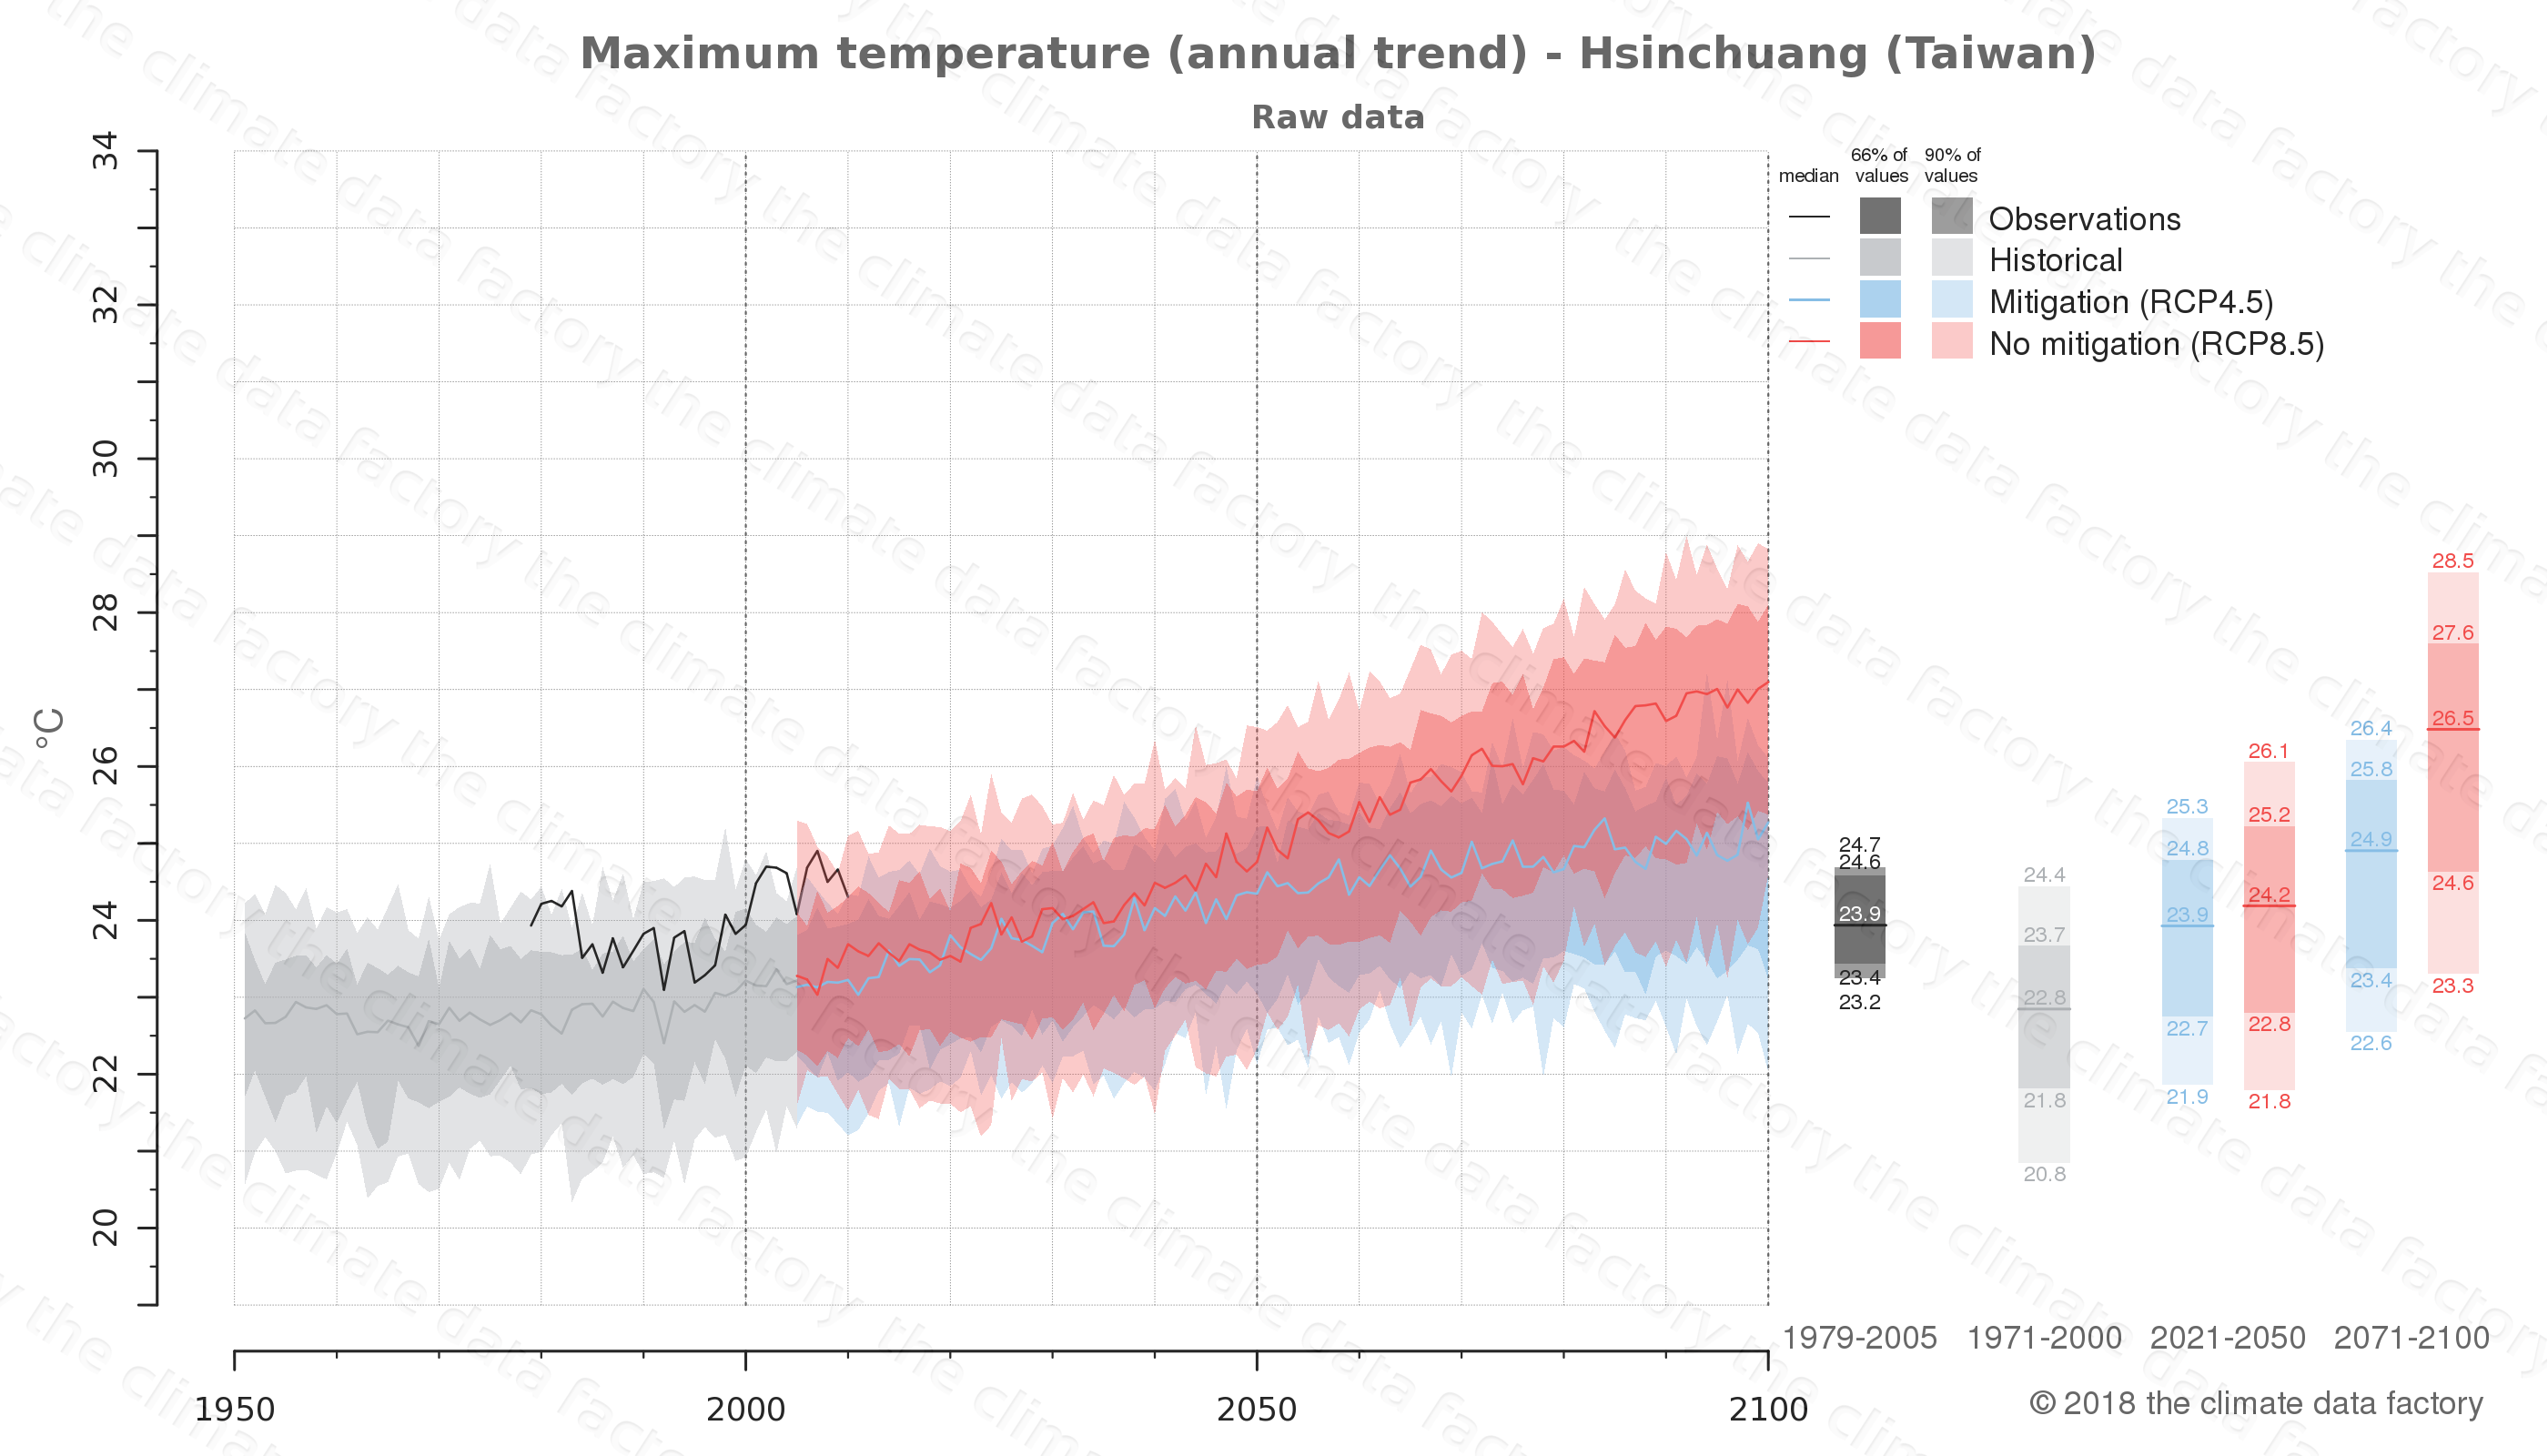 climate change data policy adaptation climate graph city data maximum-temperature hsinchuang taiwan